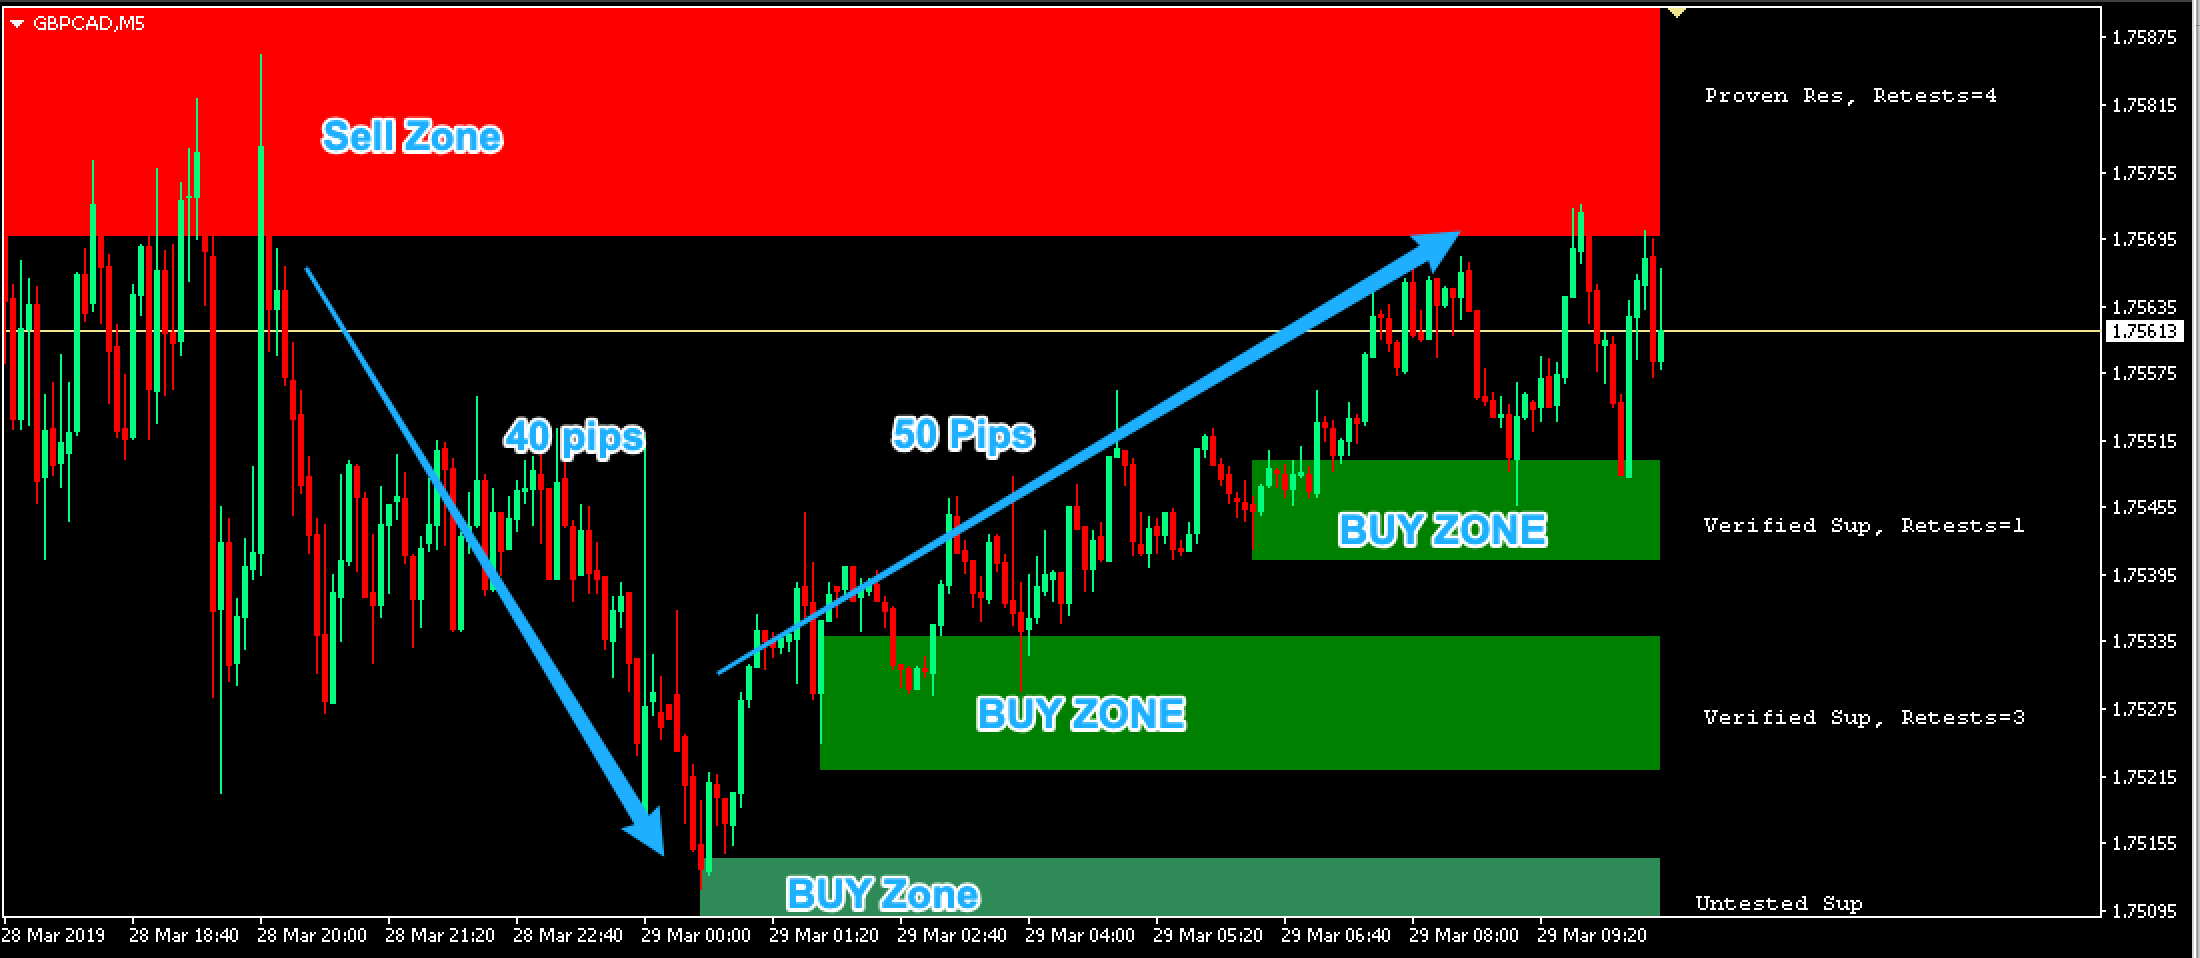 Supply Demand Indicator - 5 Min Chart